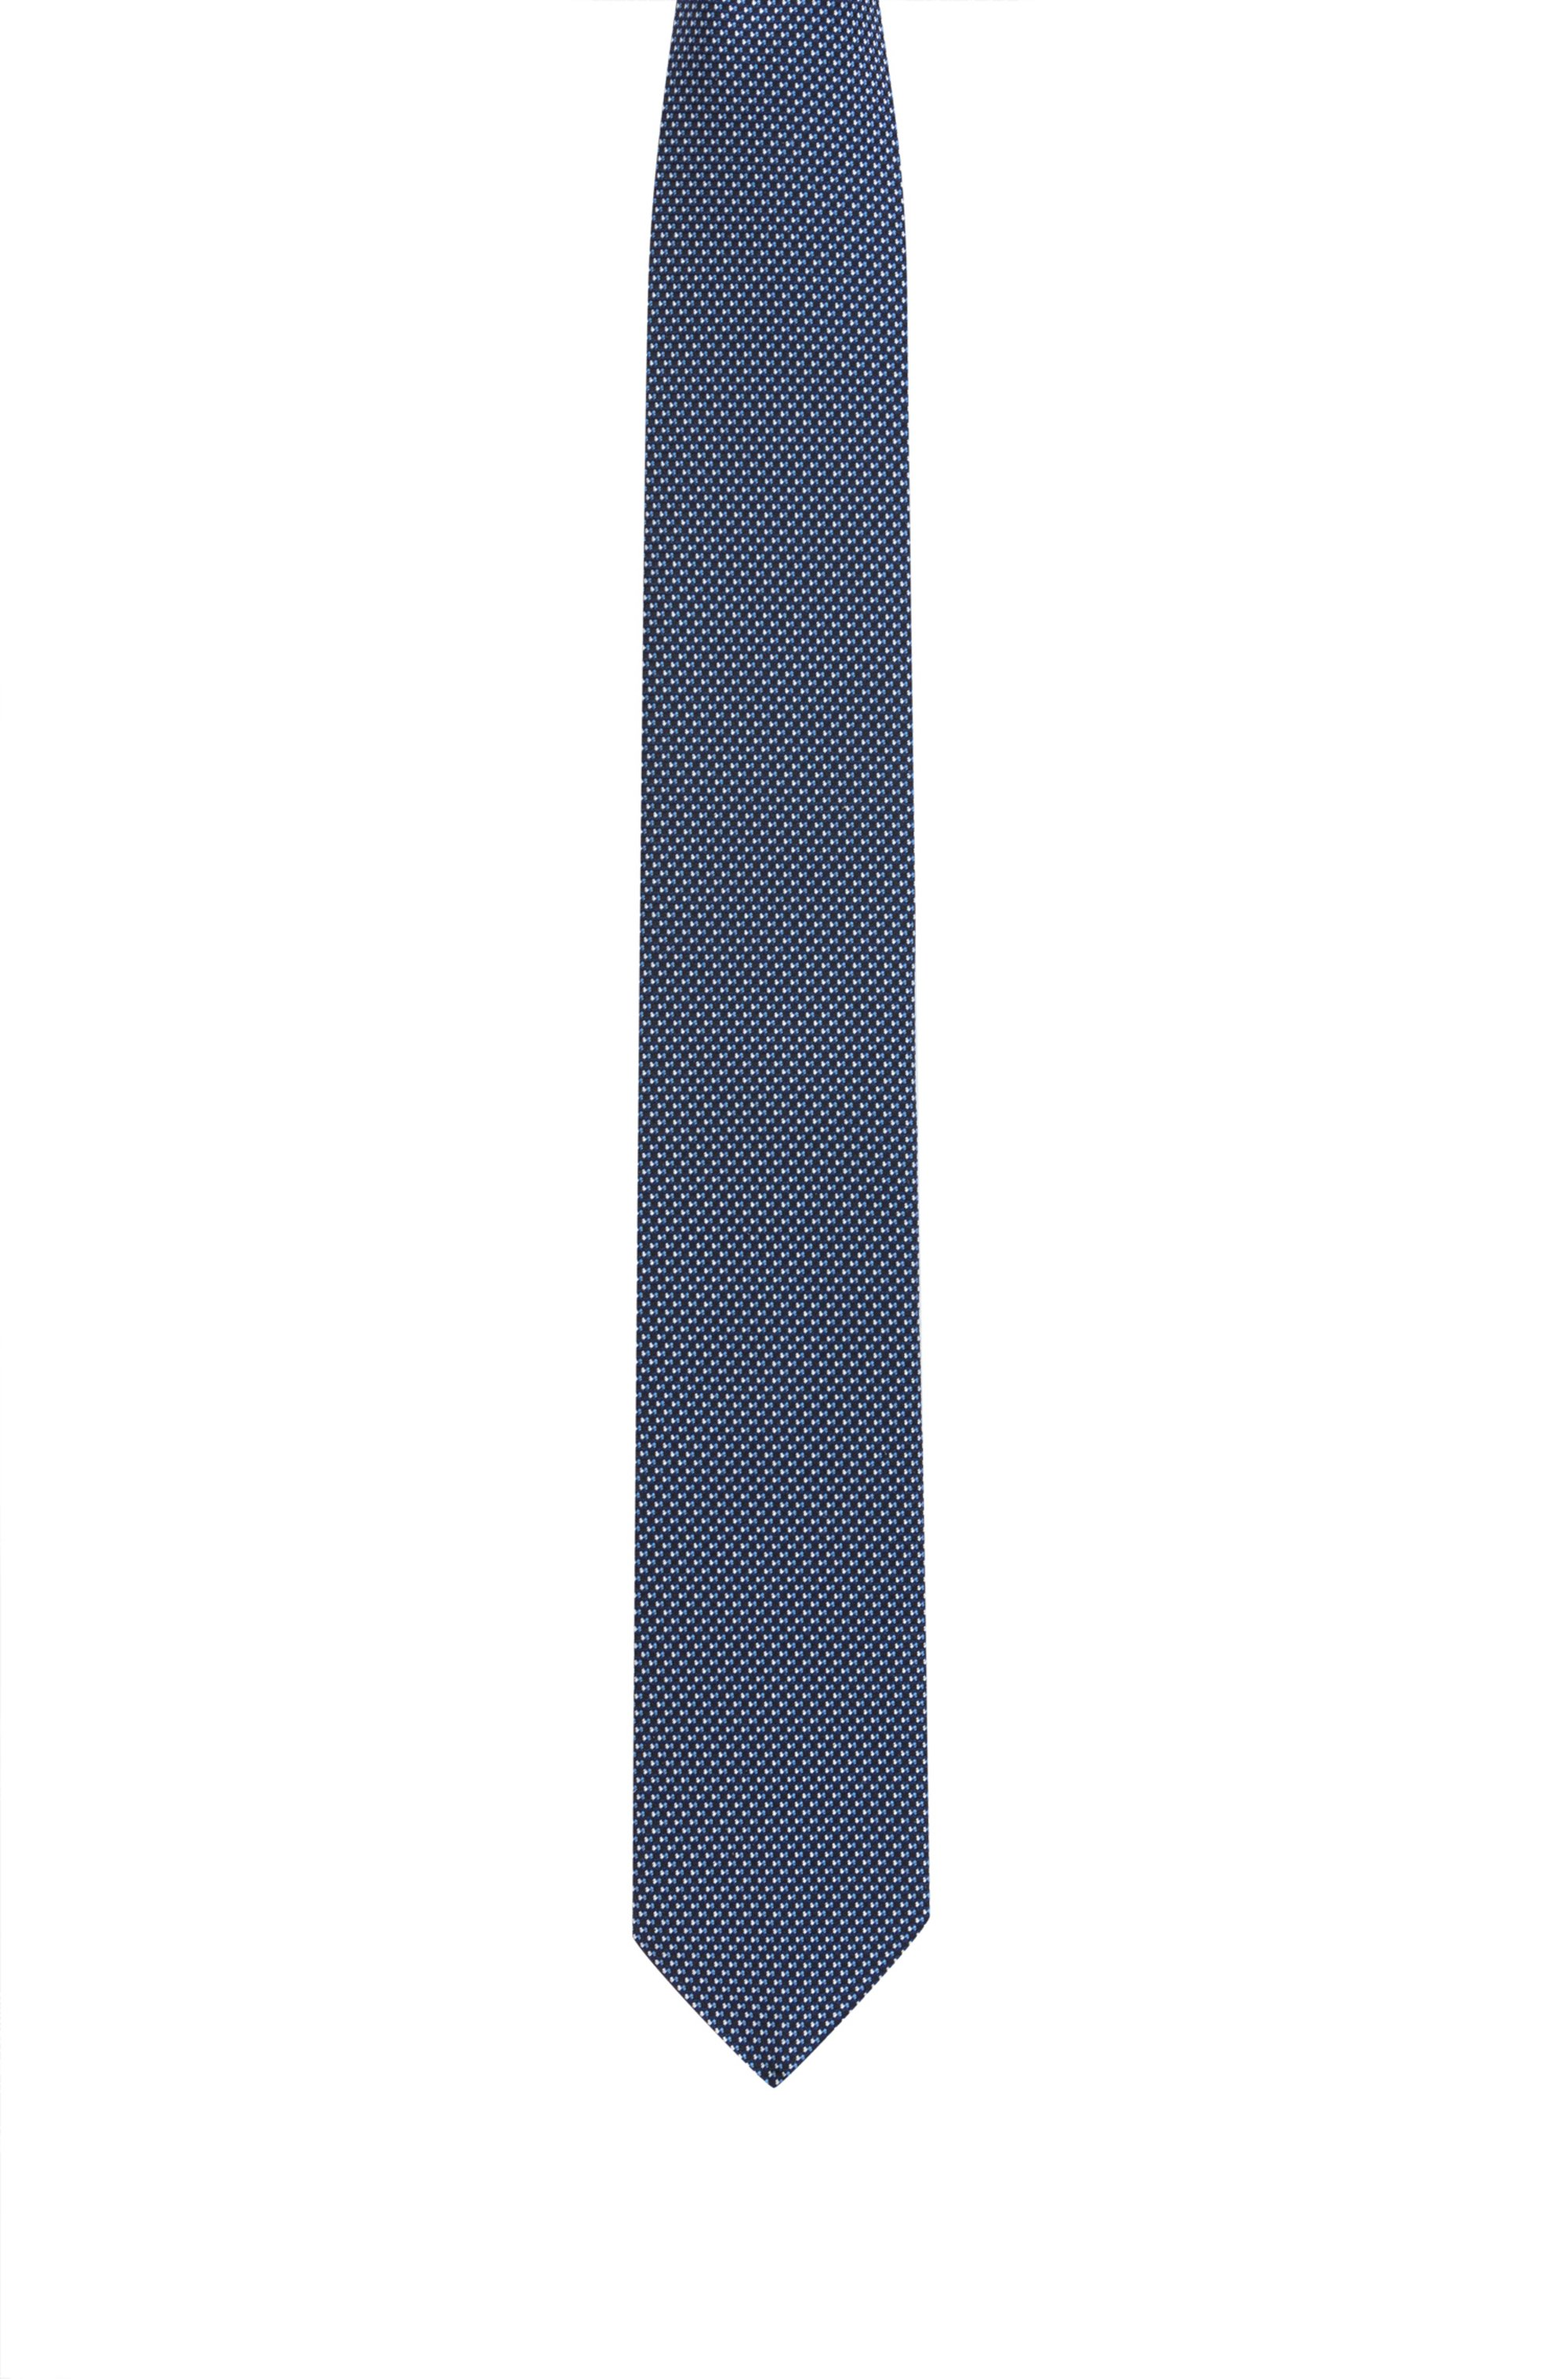 Silk-jacquard tie with micro pattern, Blue Patterned